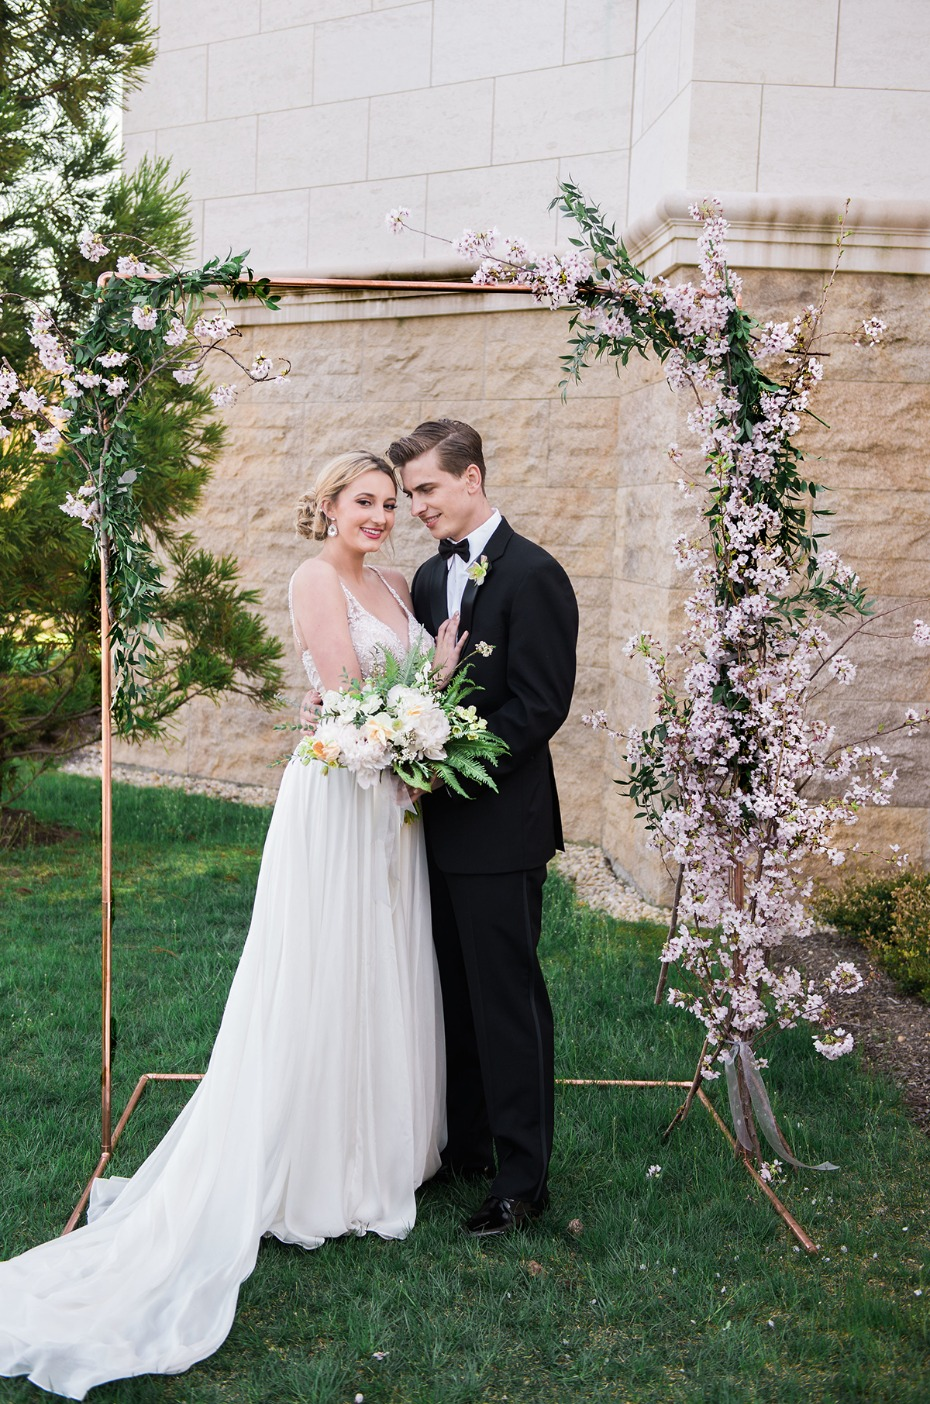 wedding couple and chic wedding backdrop